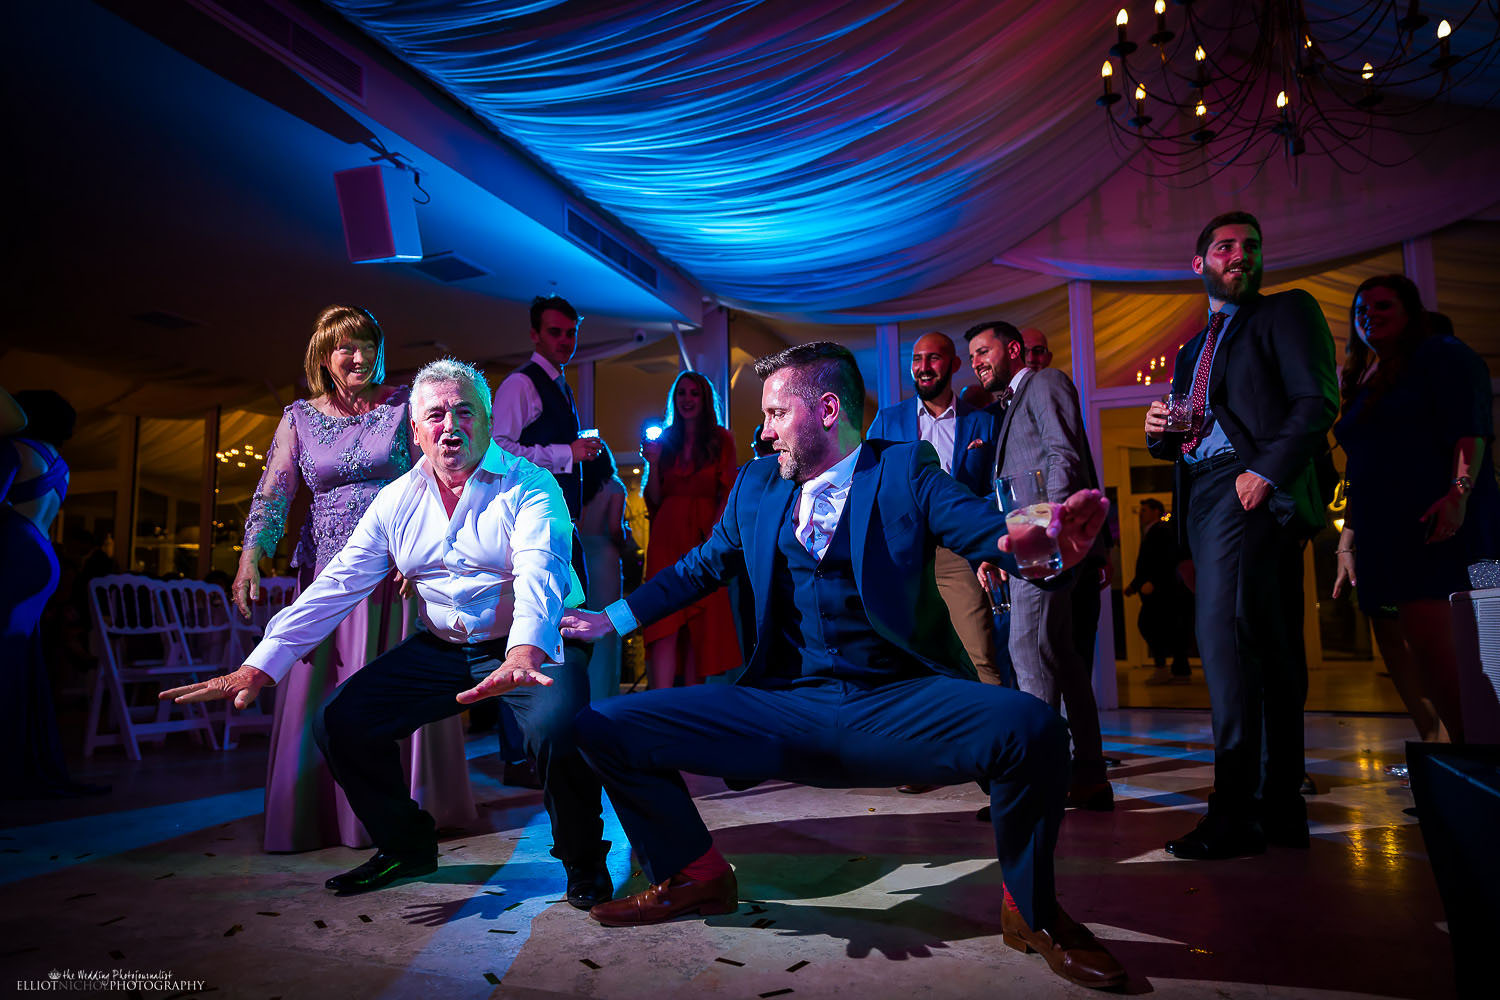 Wedding guests having a dance off during the wedding reception party. Photo by Elliot Nichol Photography